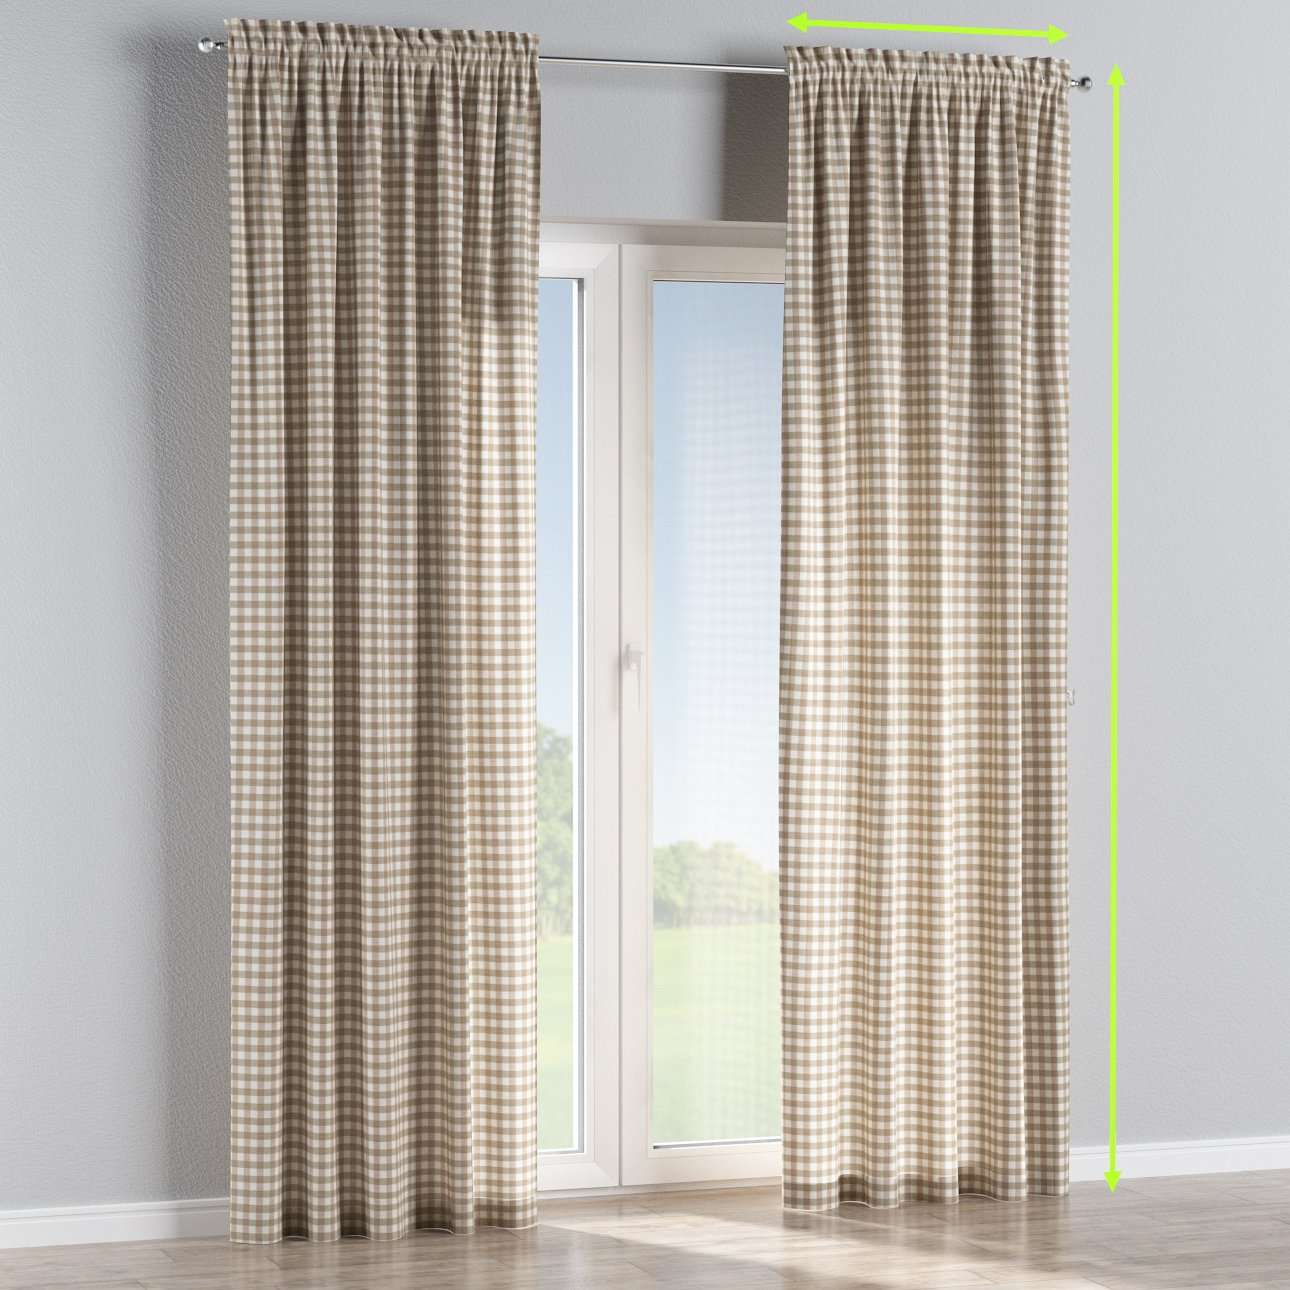 Slot and frill curtains in collection Quadro, fabric: 136-06